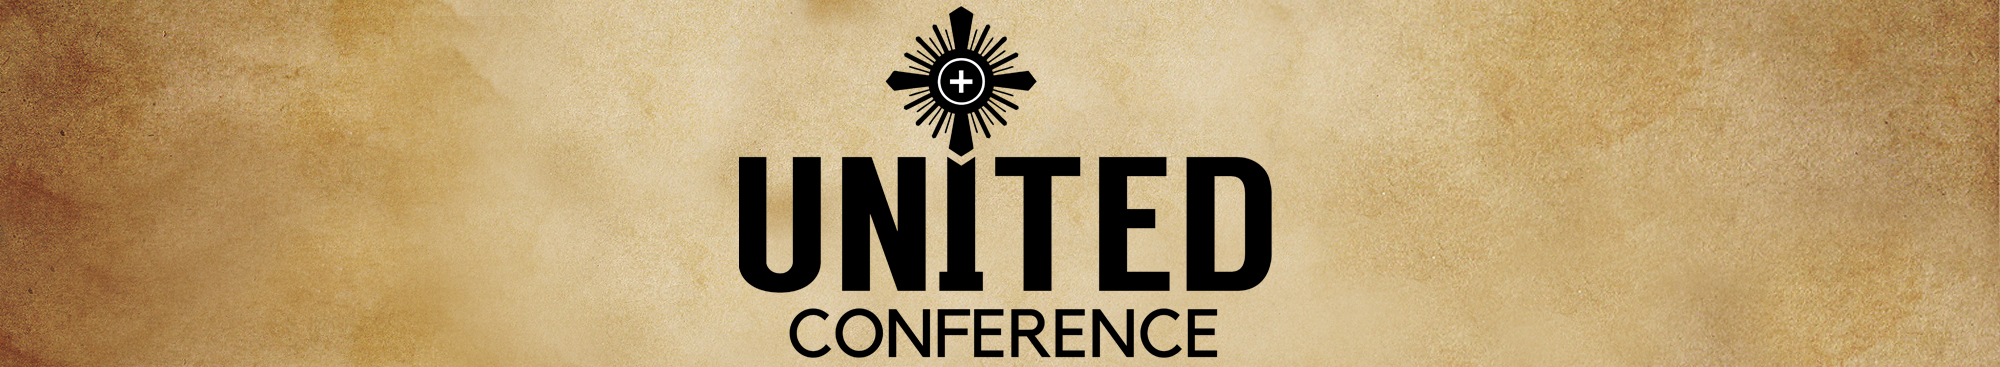 United Conference 2020